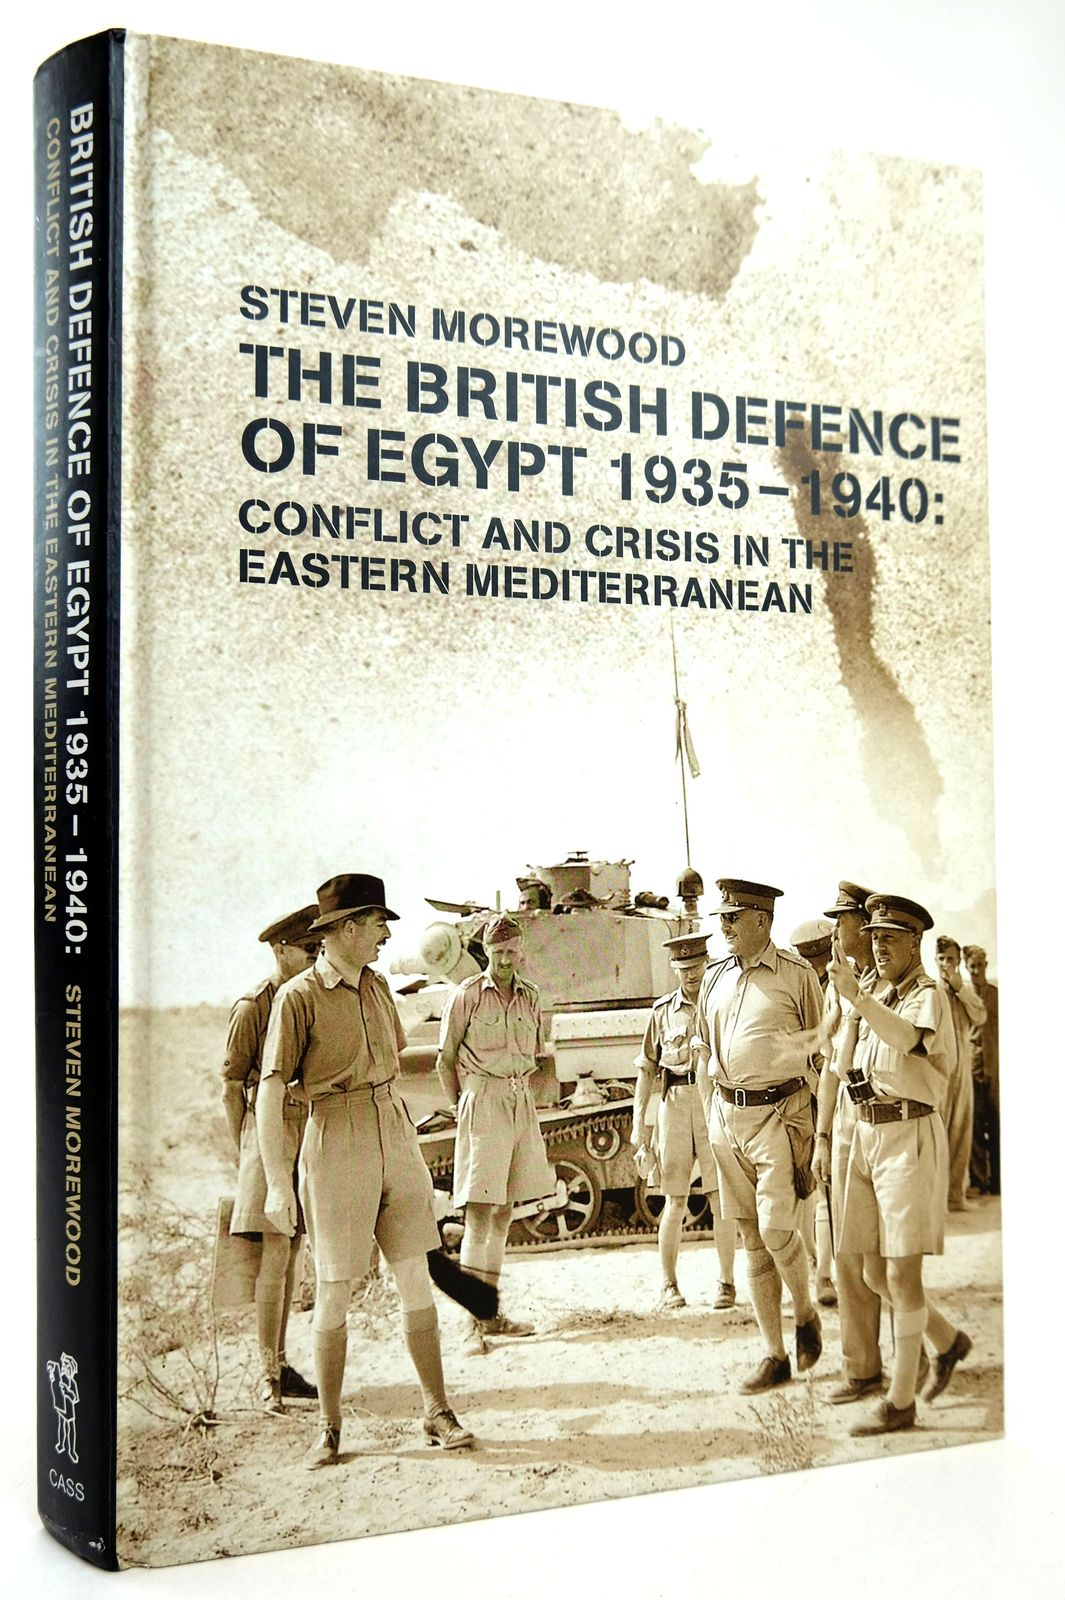 Photo of THE BRITISH DEFENCE OF EGYPT 1935-1940: CONFLICT AND CRISIS IN THE EASTERN MEDITERRANEAN- Stock Number: 1818768